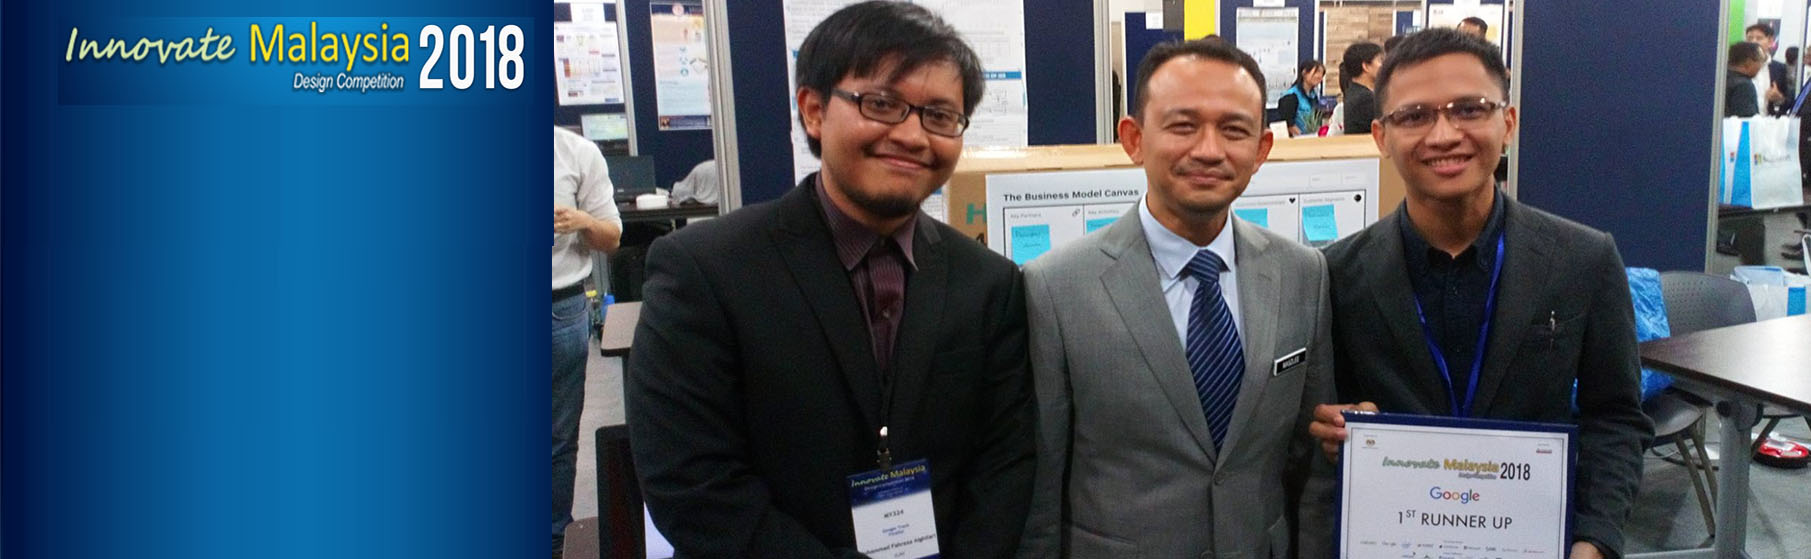 Innovate Malaysia Design Competition 2018: IIUM Team Wins 1st Runner Up